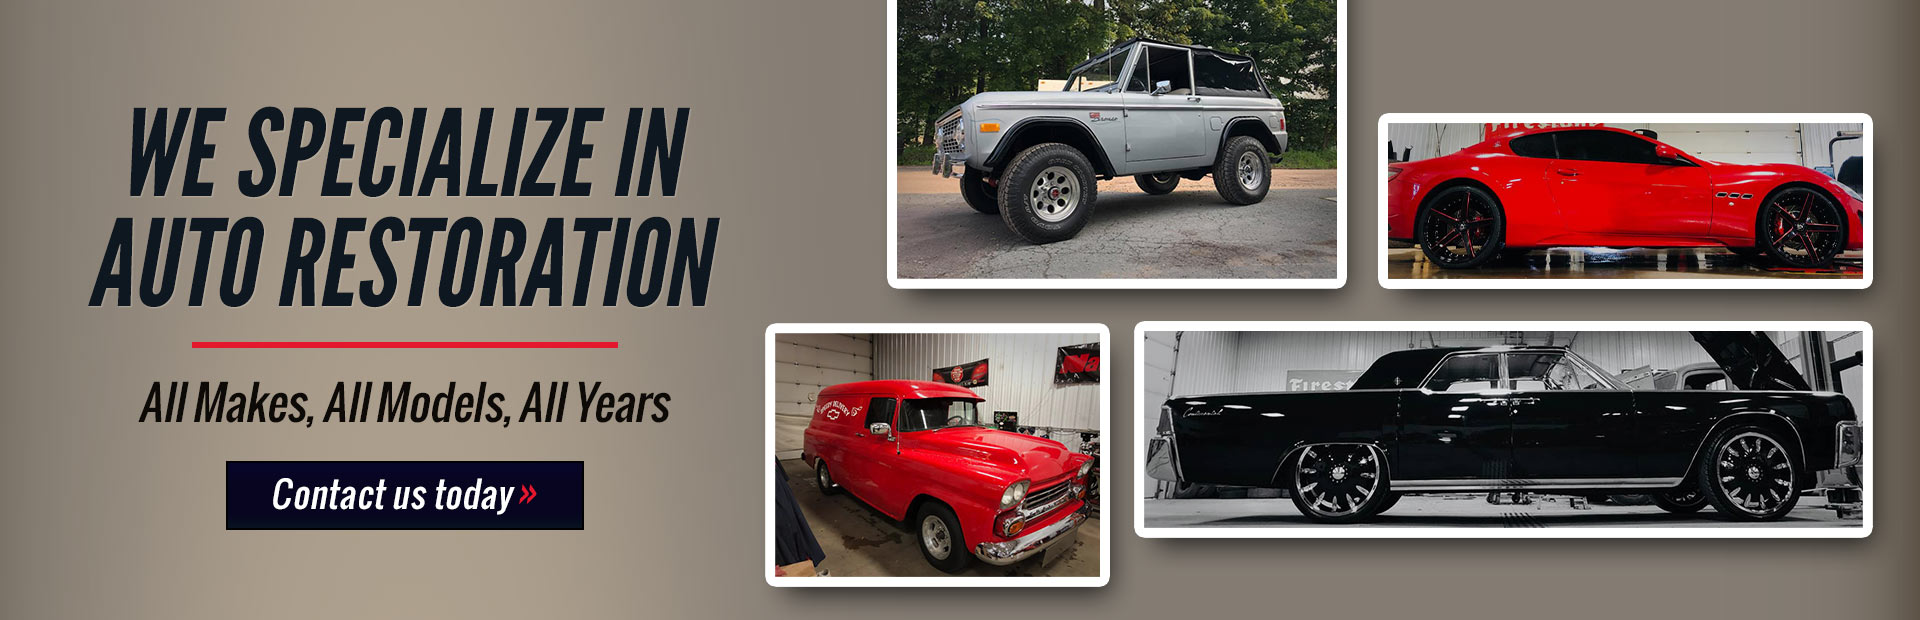 We specialize in auto restoration for all makes, models, and years! Contact us today.